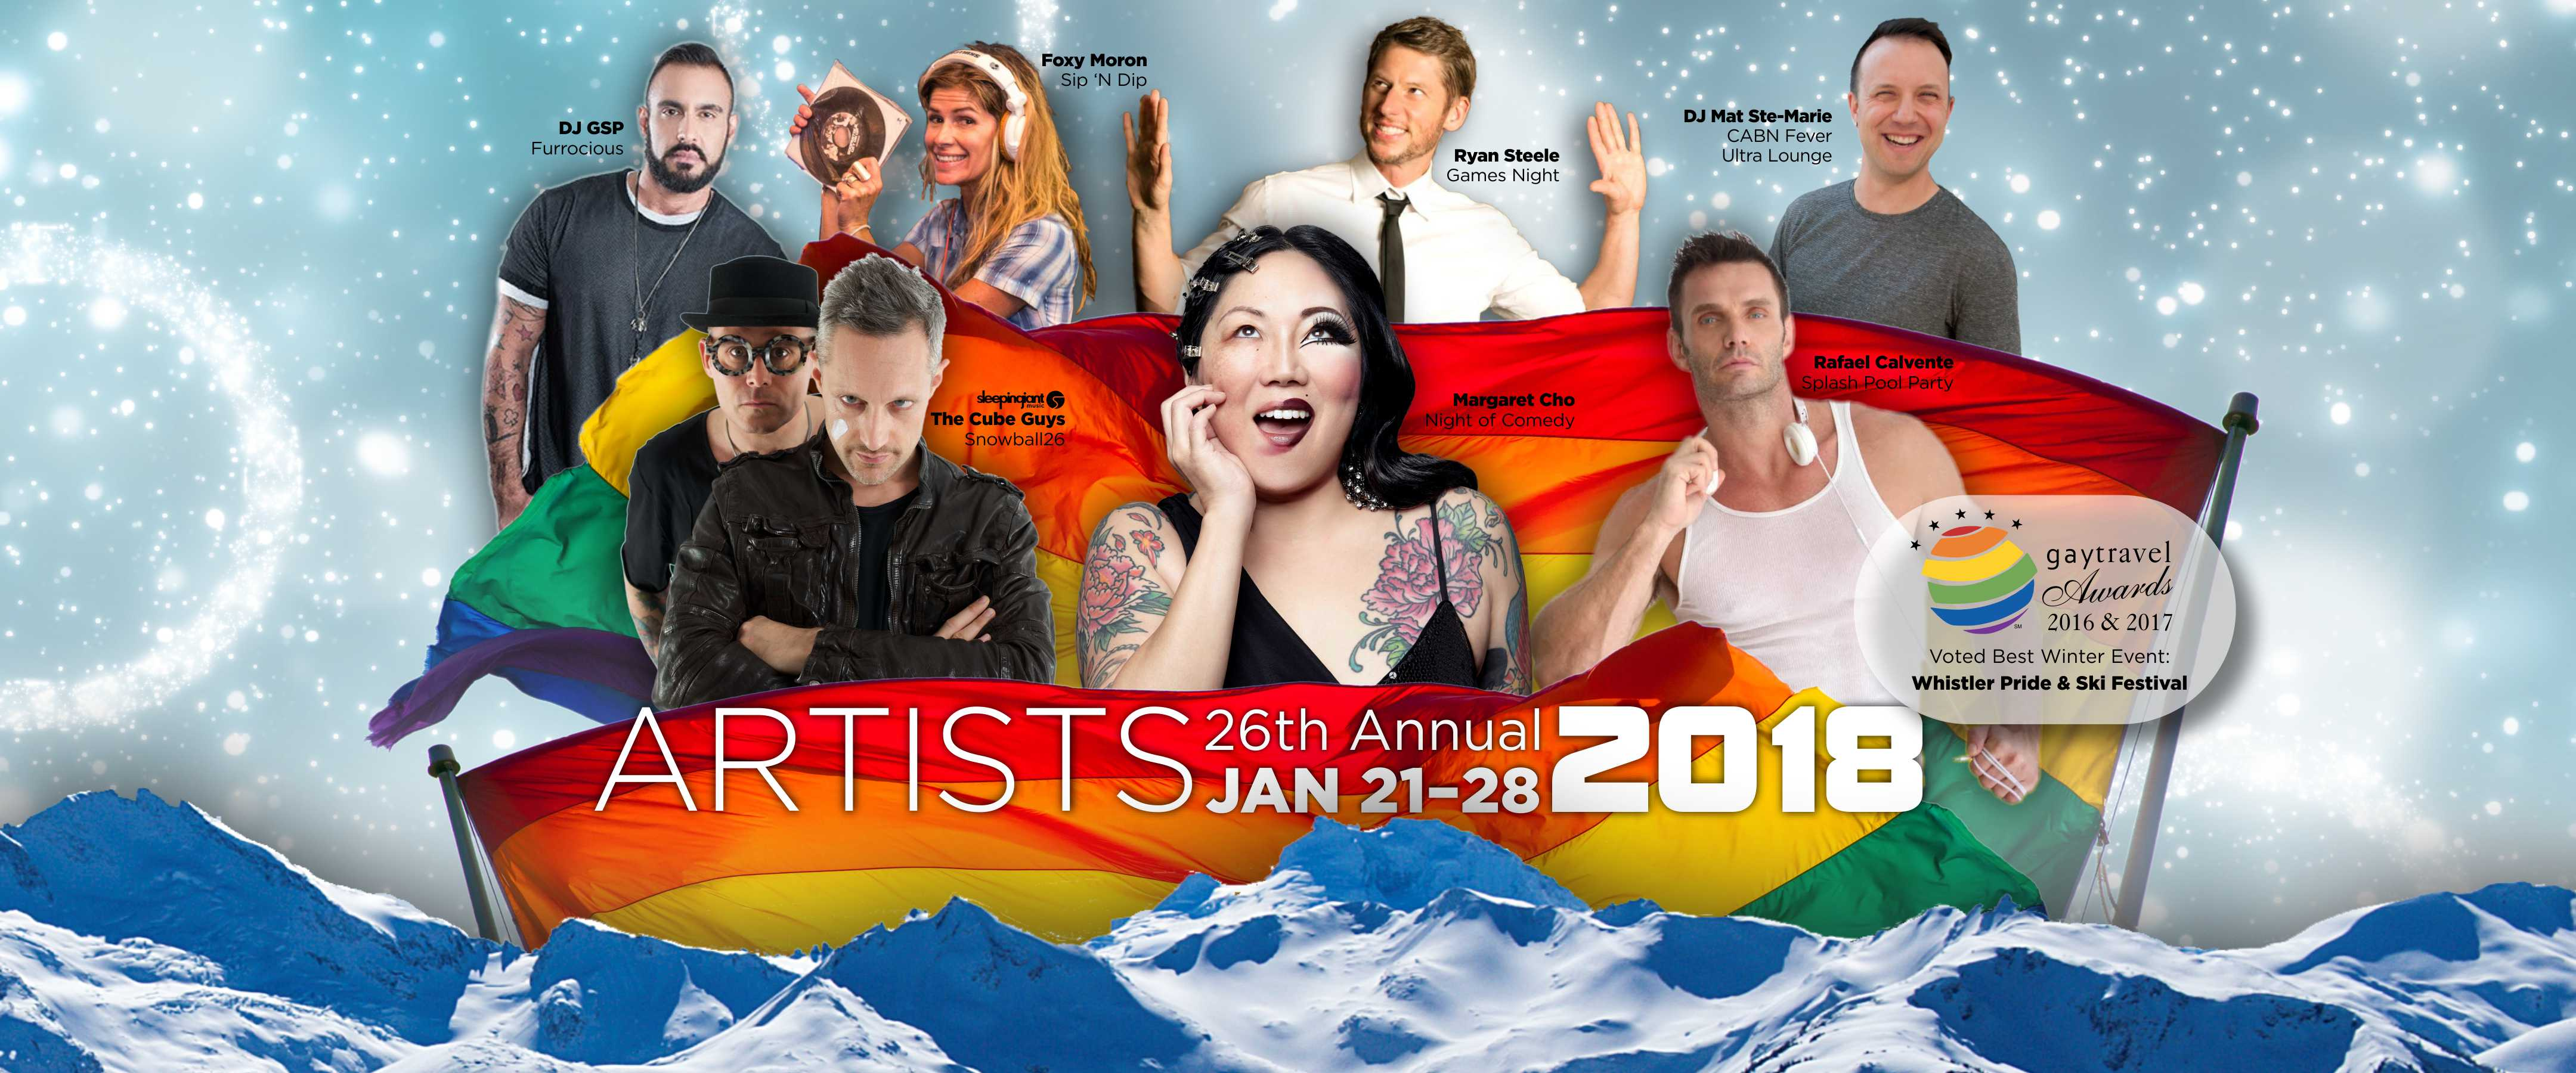 Whistler Pride Artists 2018